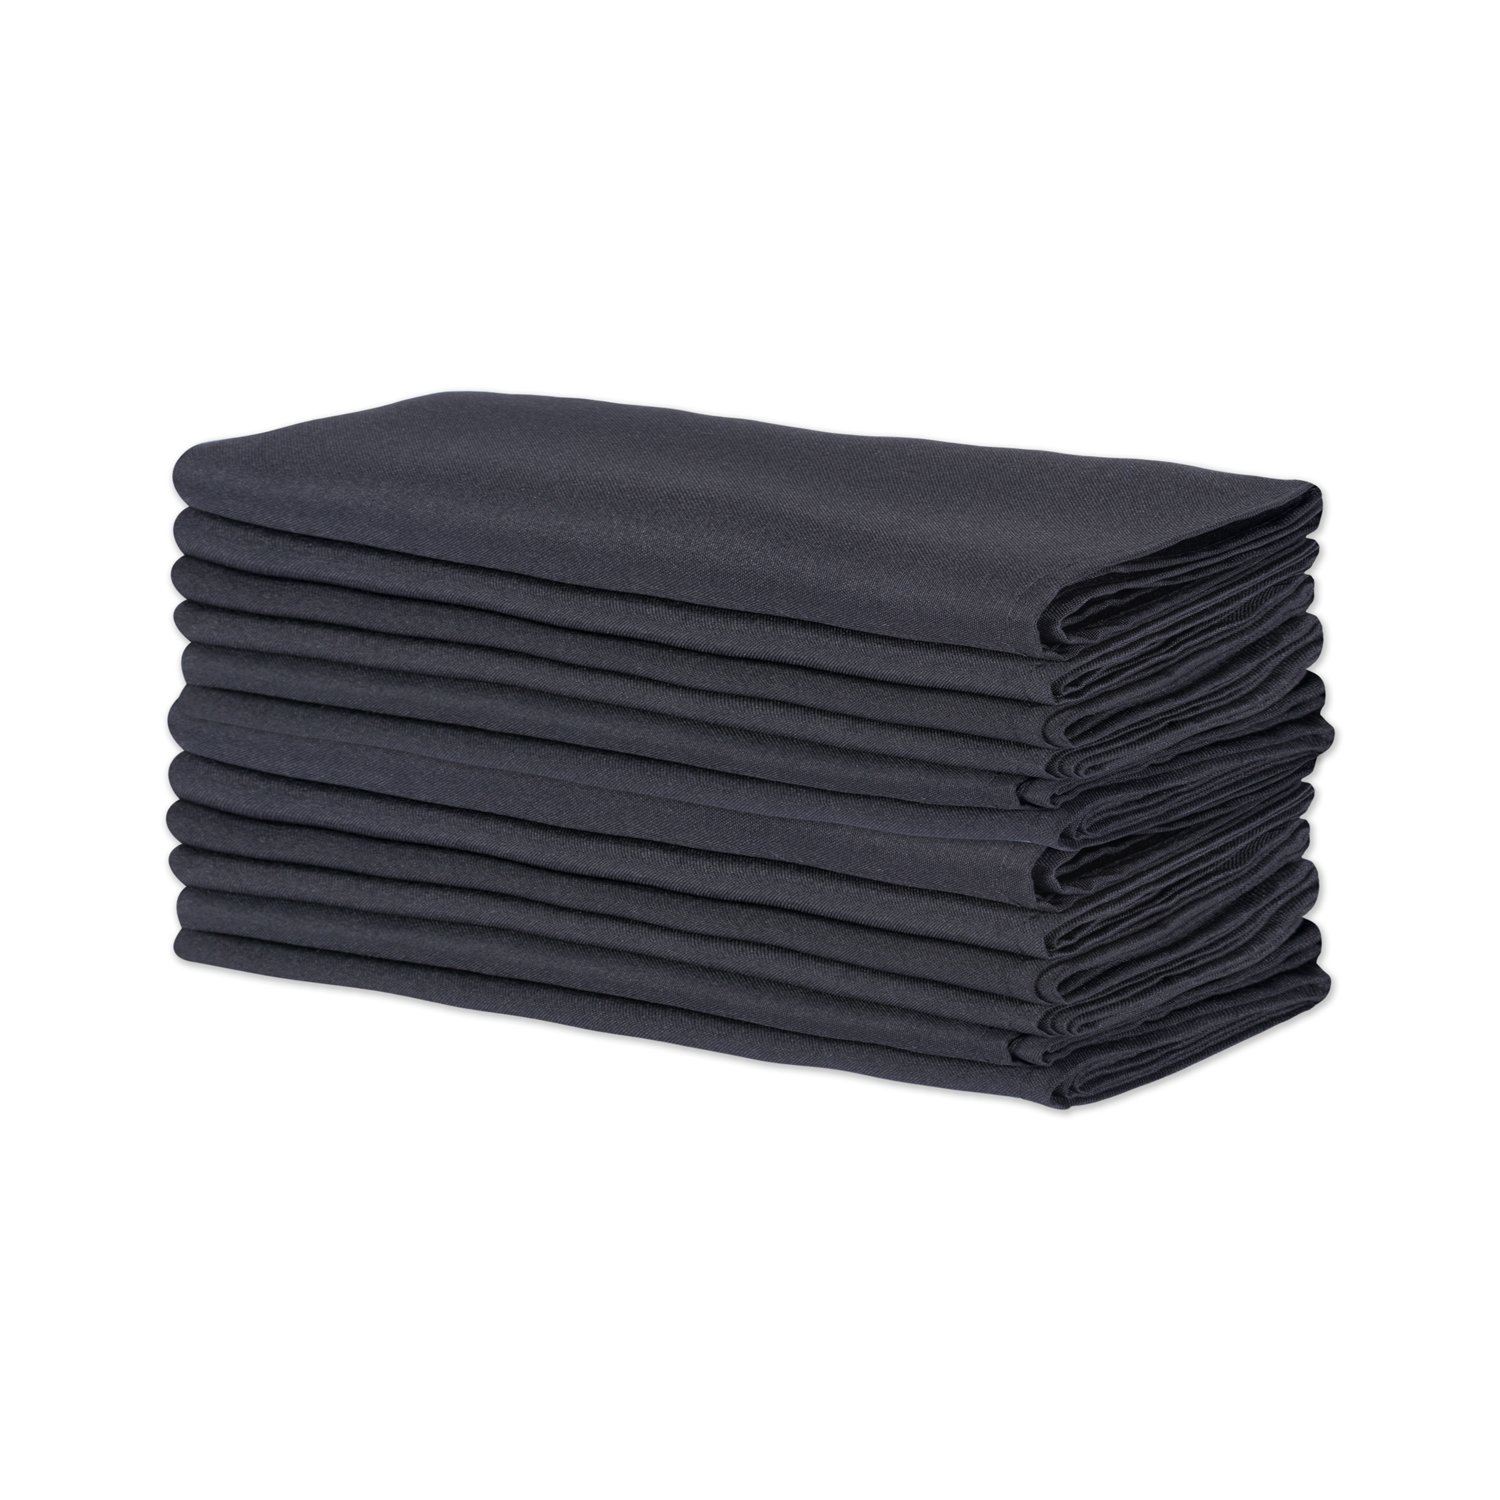 E-Living Store Polyester Commercial Quality Heavy Duty Cloth Napkins (18x18-inch) for Restaurant or Home Table, Bulk Set of 12, Black